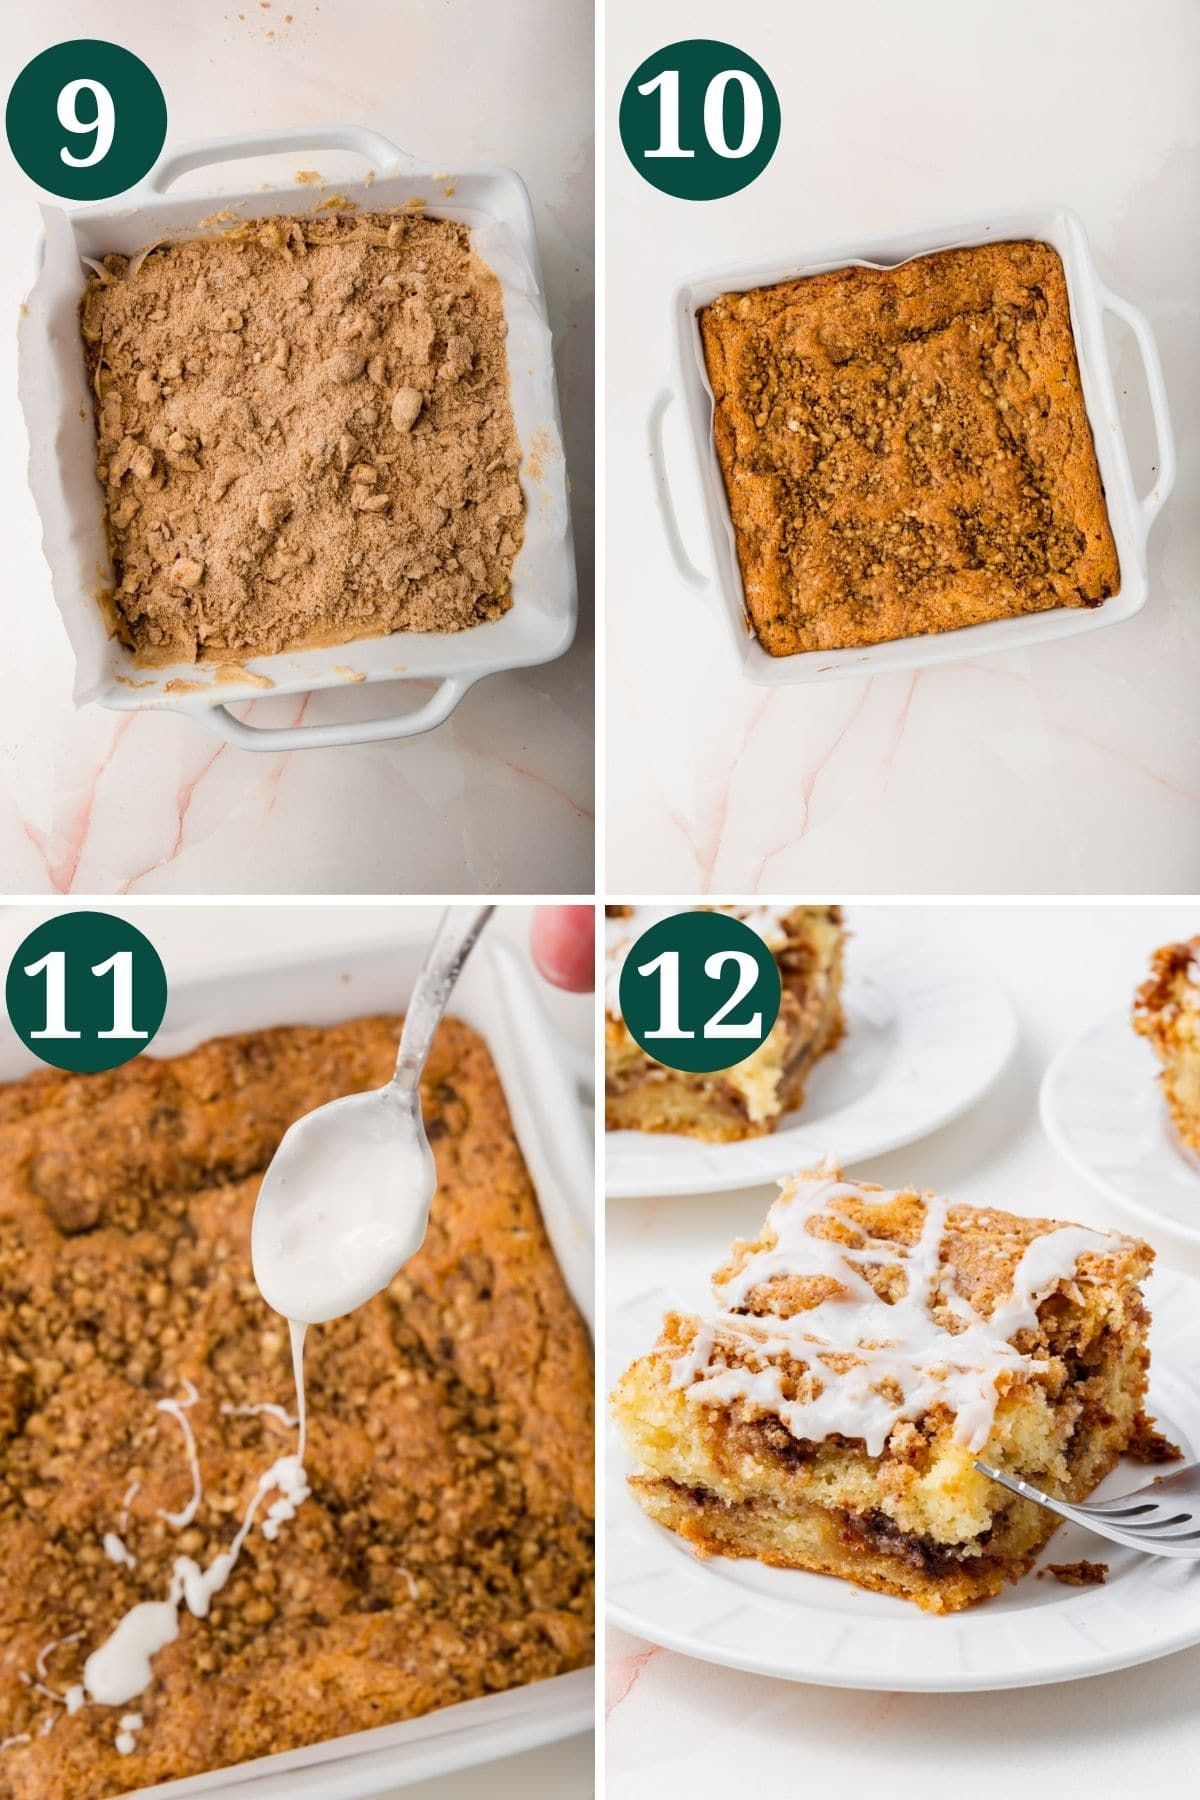 The process of showing how to make gluten-free coffee cake.